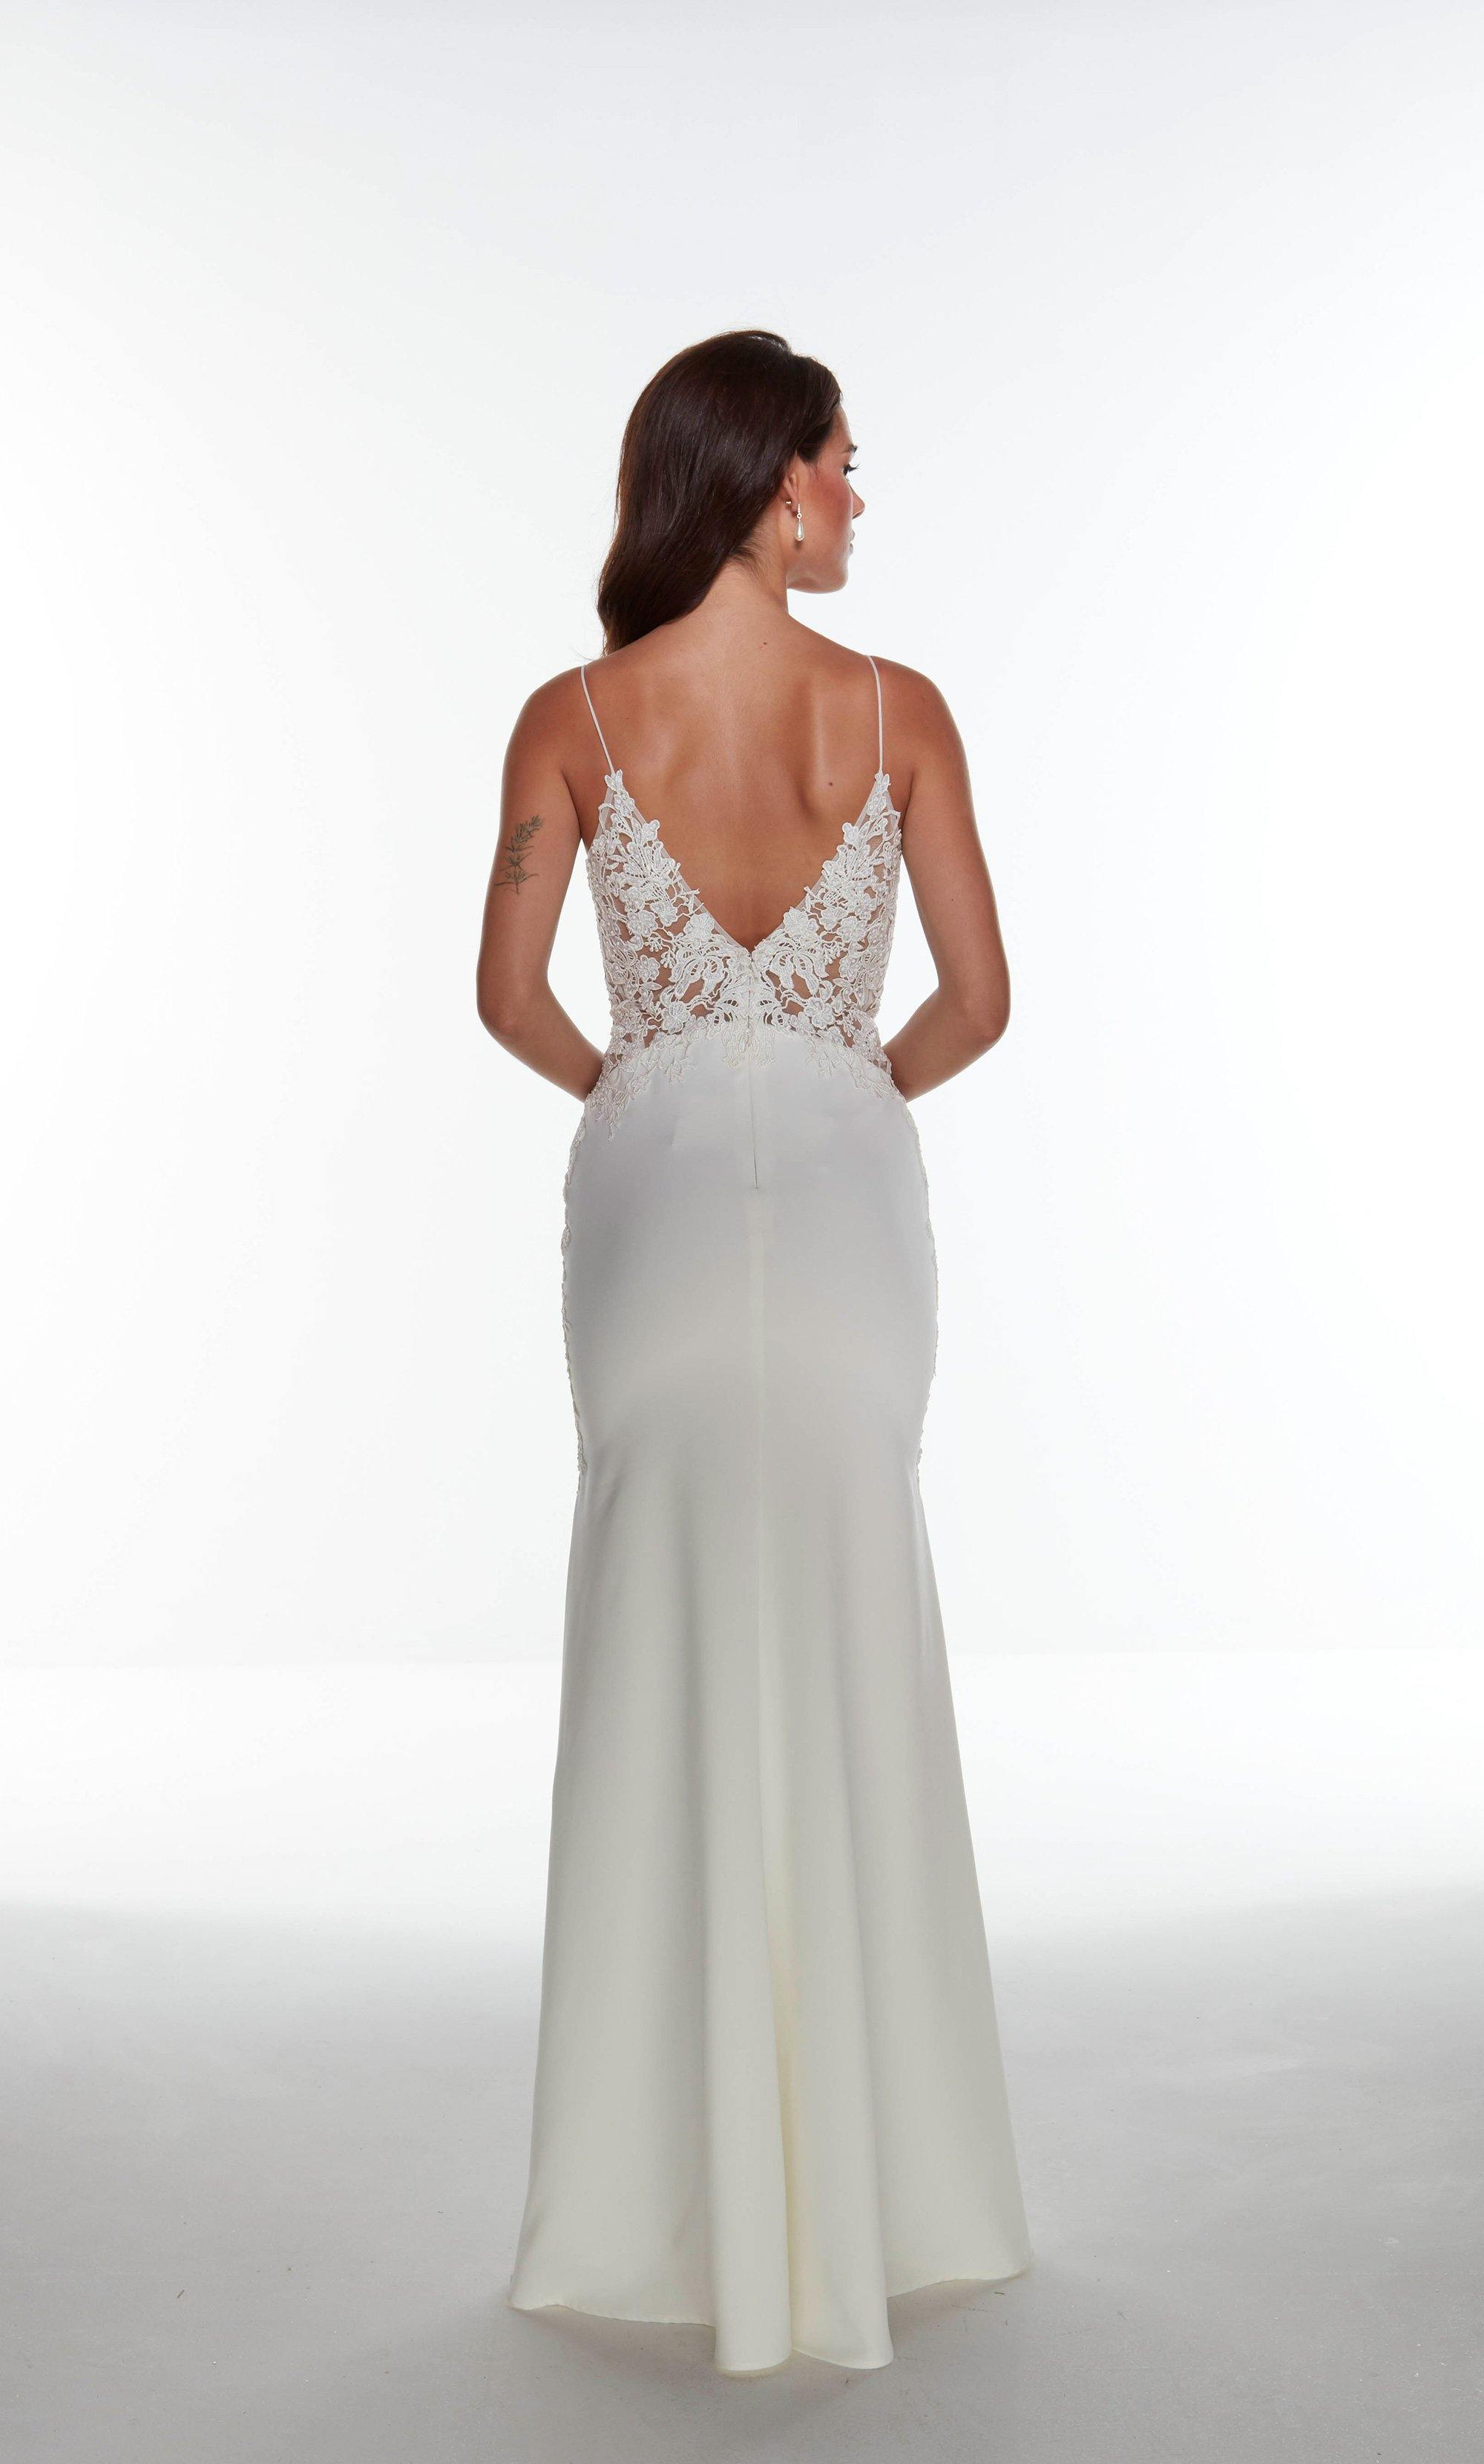 Ivory fit and flare informal bridal dress with a V shaped back and train